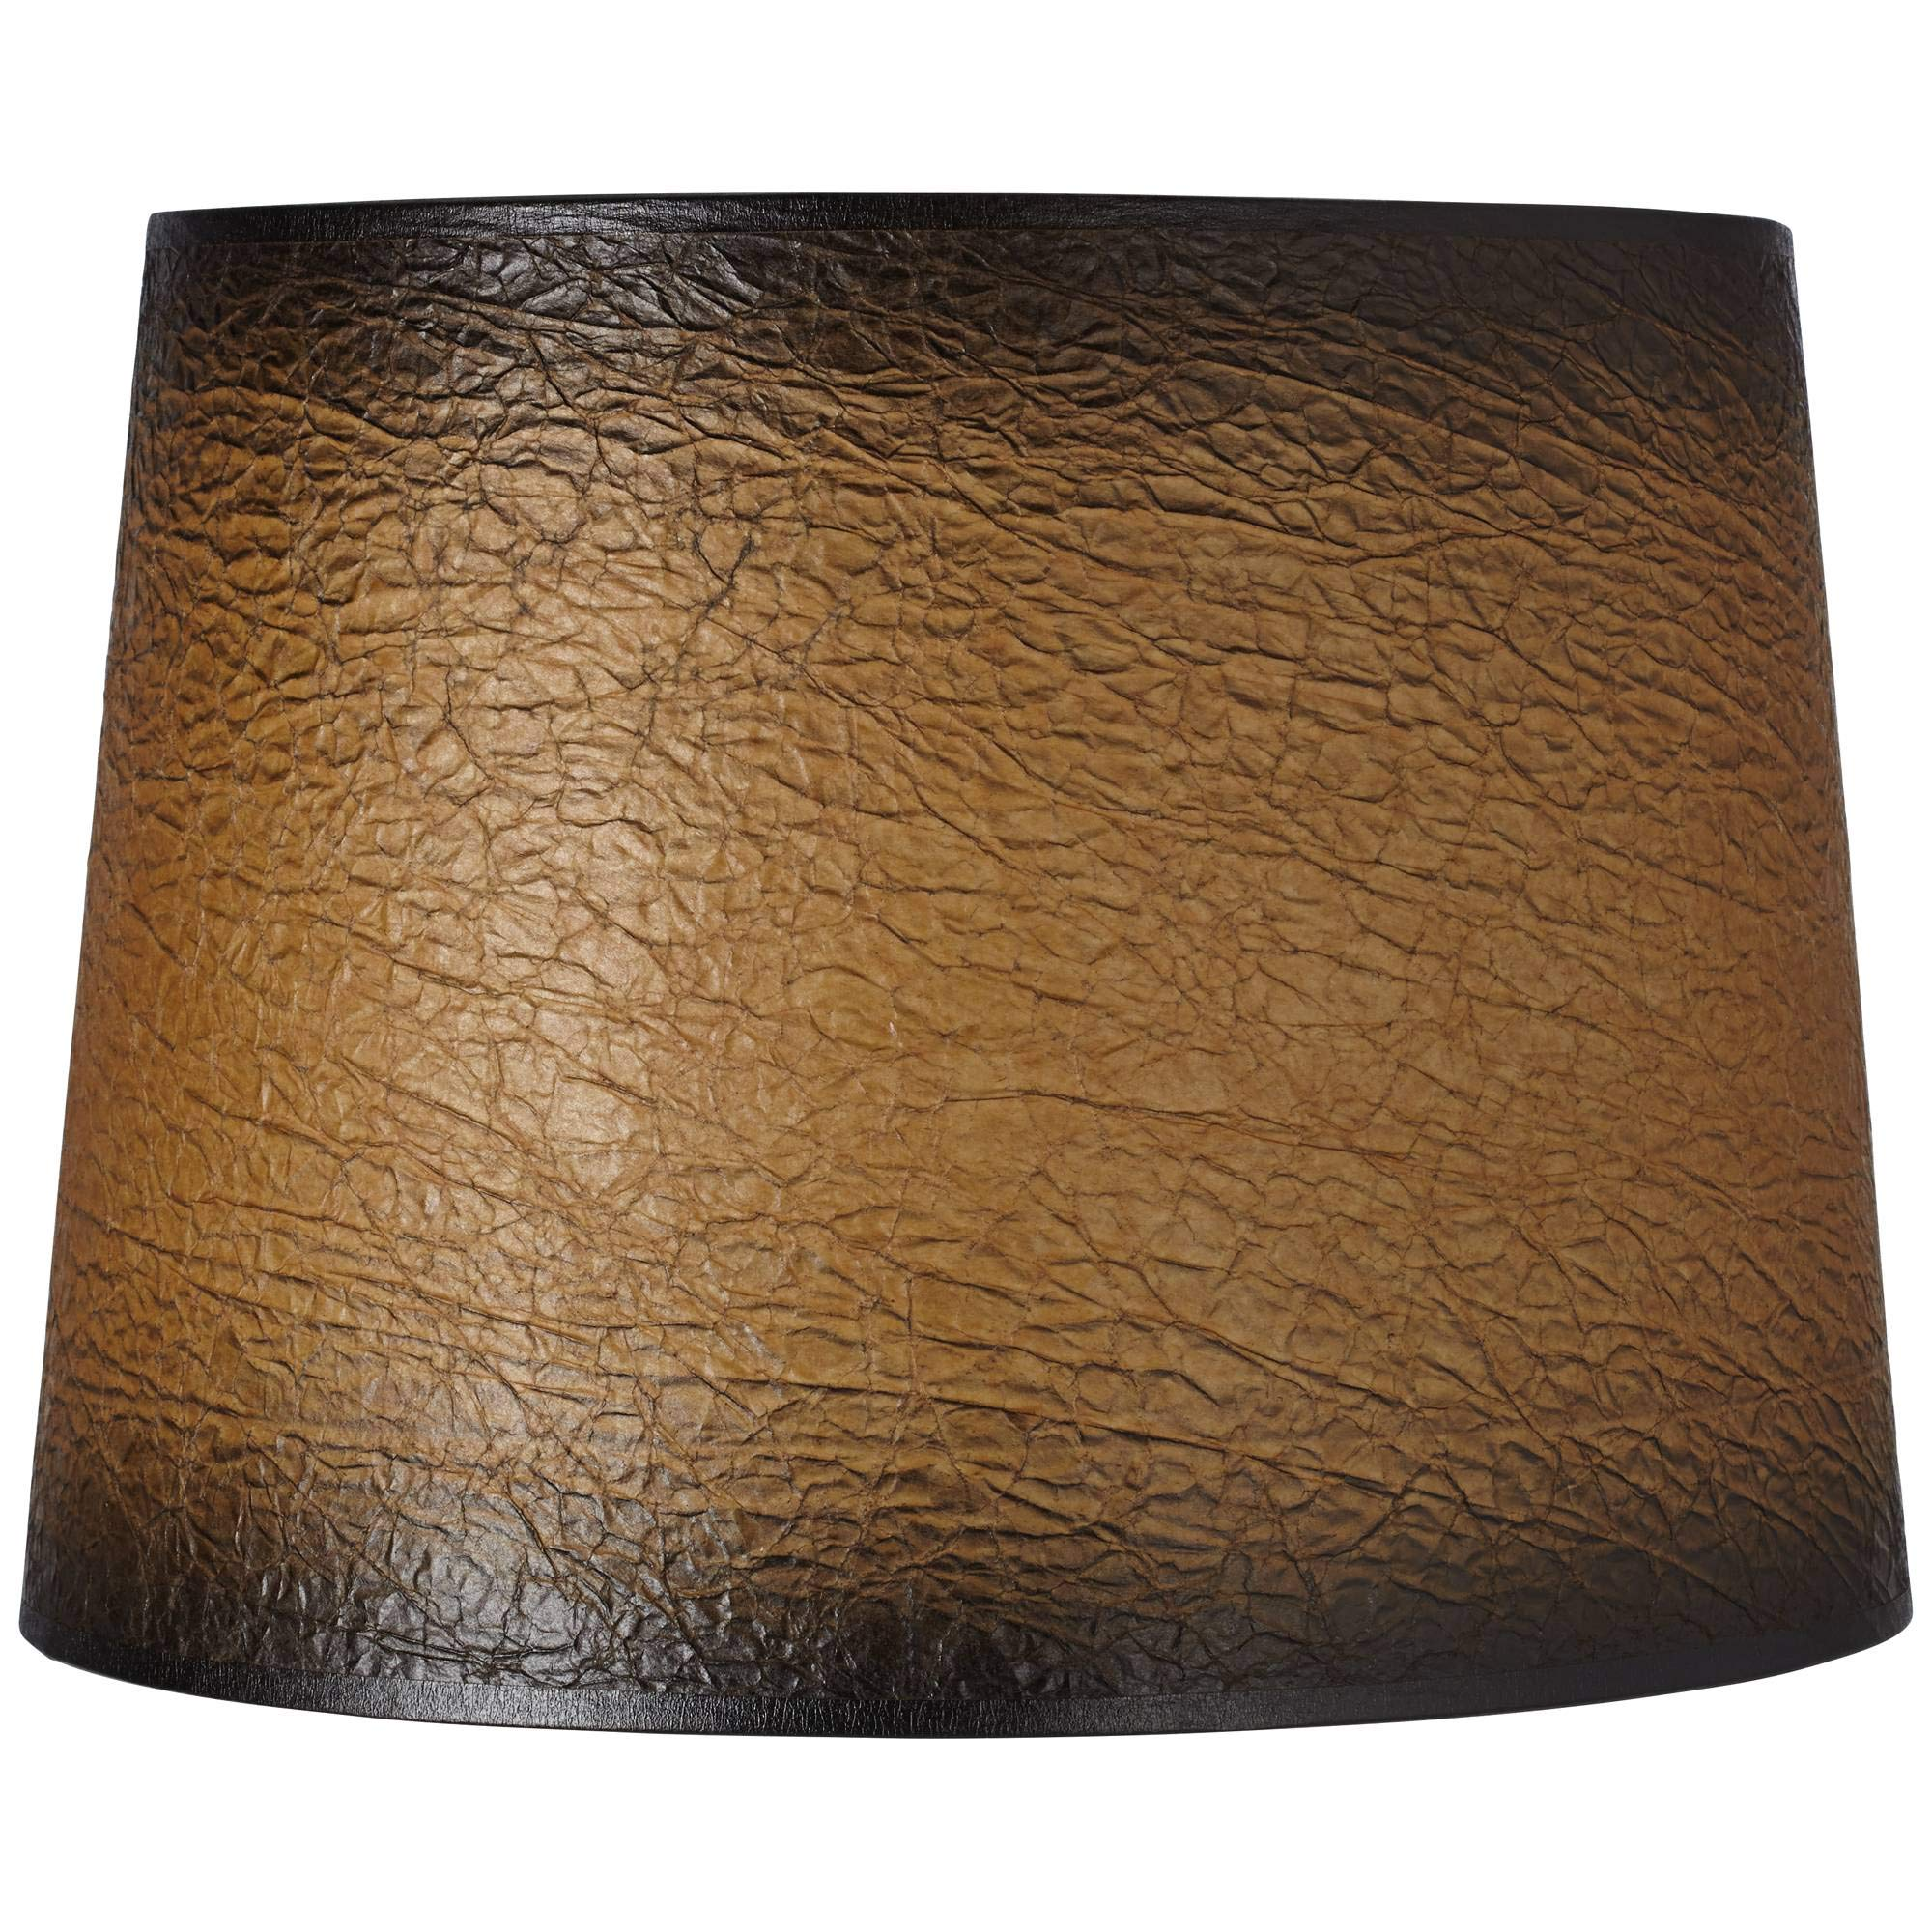 Distressed Faux Paper Lamp Shade 13x15x11 (Spider) - Brentwood